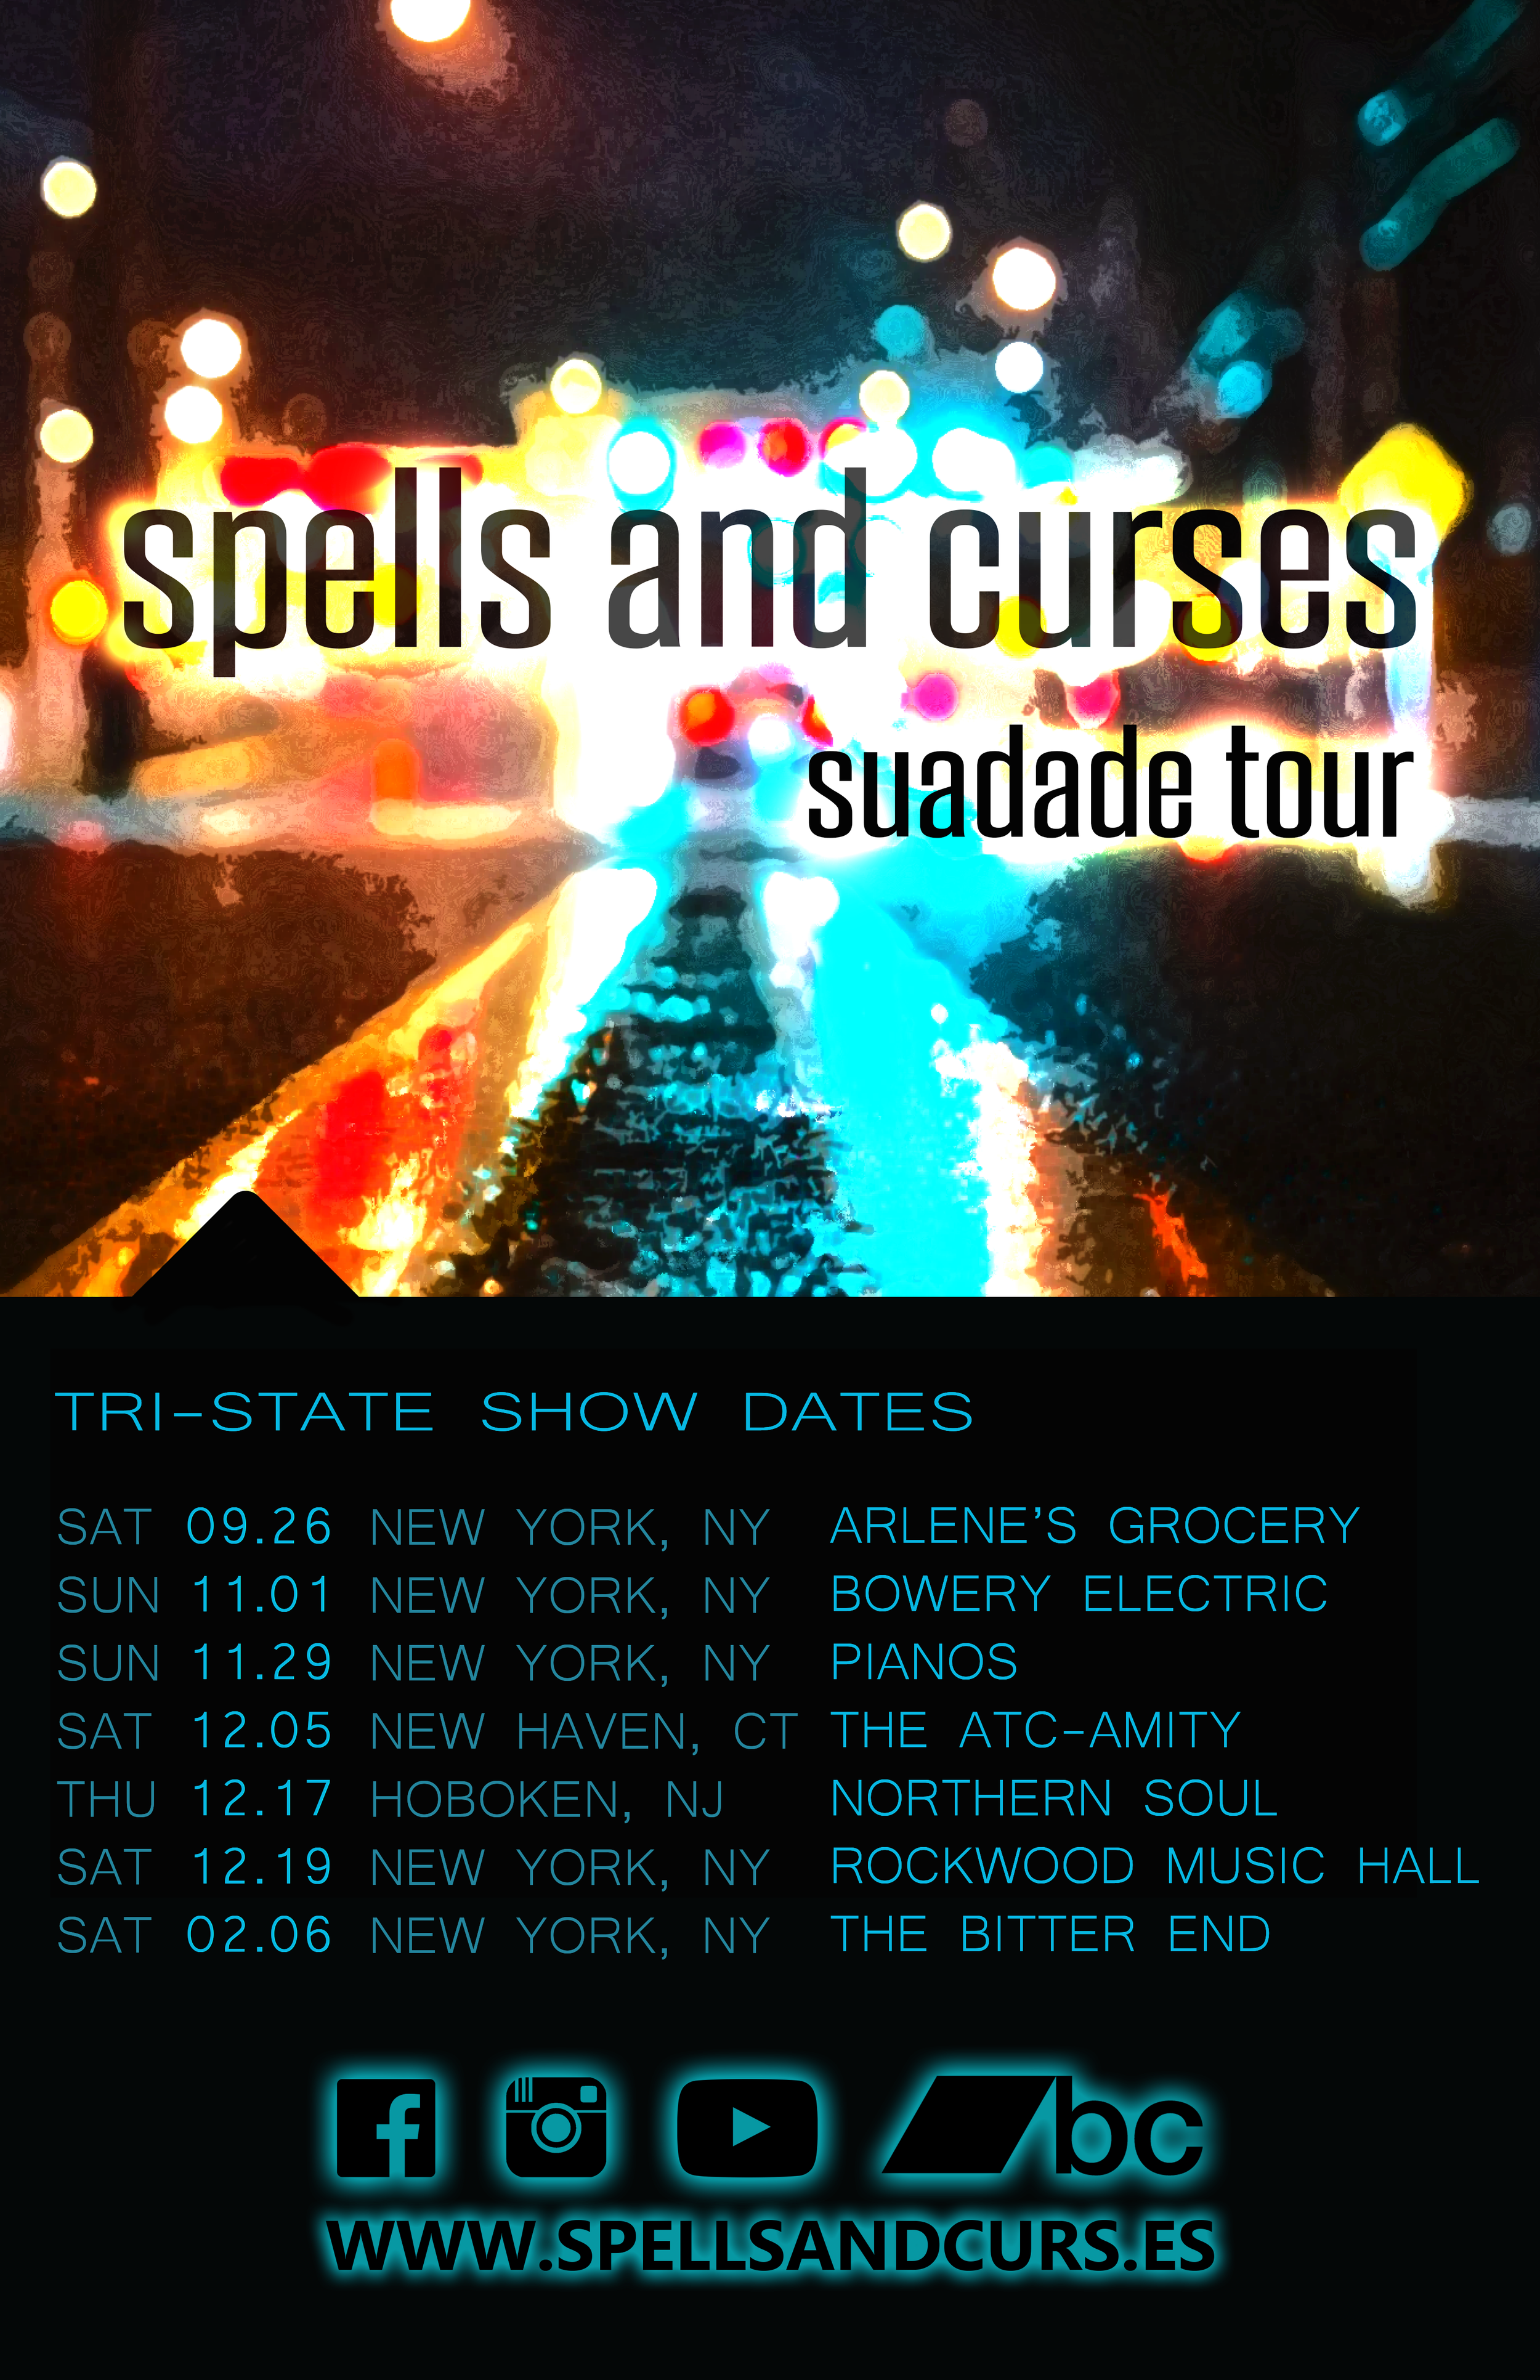 SPELLSANDCURSES-SUADADE-TOUR_UPDATED-12.09.15 copy